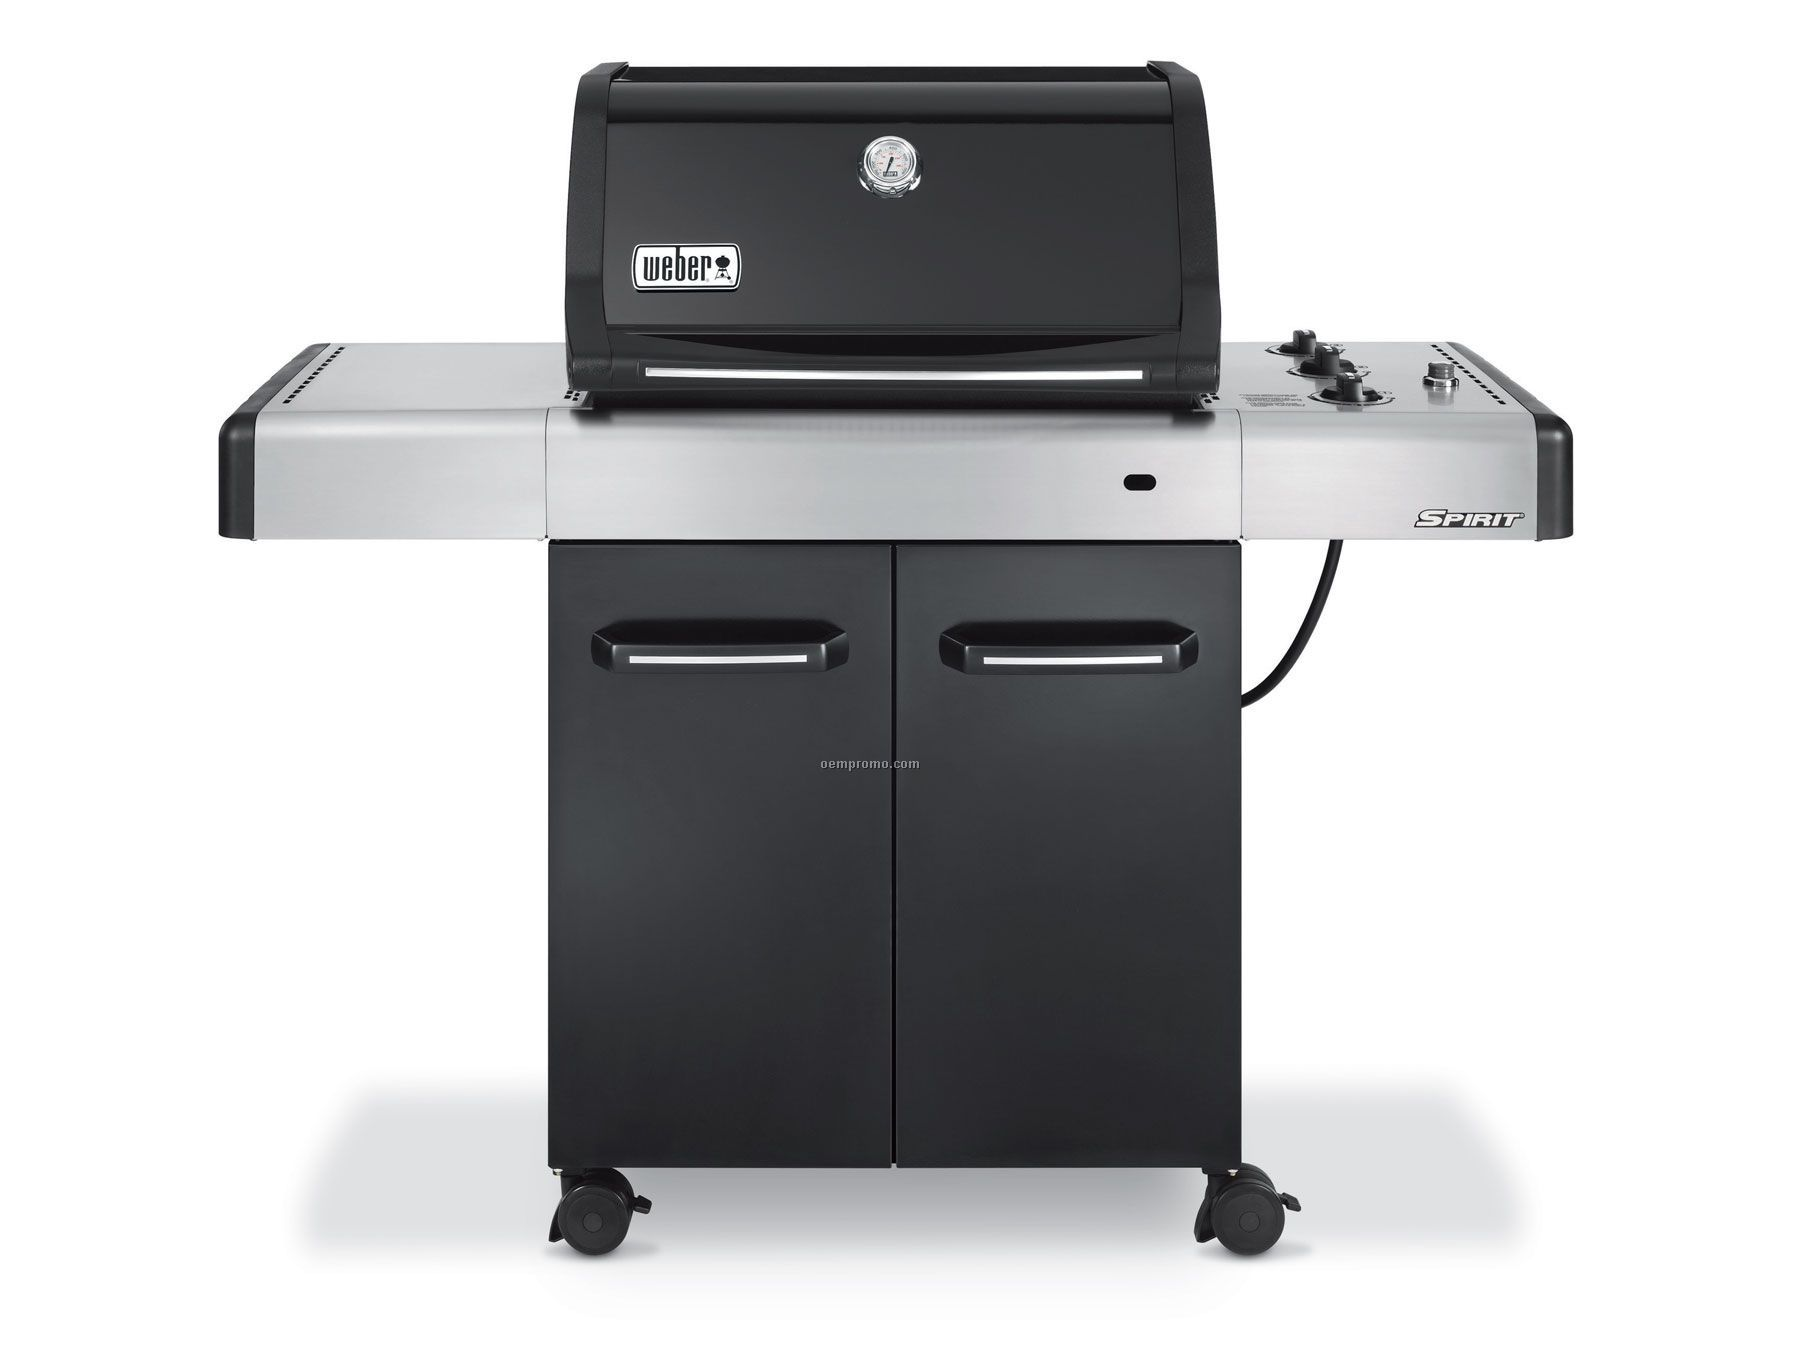 weber spirit s 210 2 burner propane gas grill in stainless. Black Bedroom Furniture Sets. Home Design Ideas